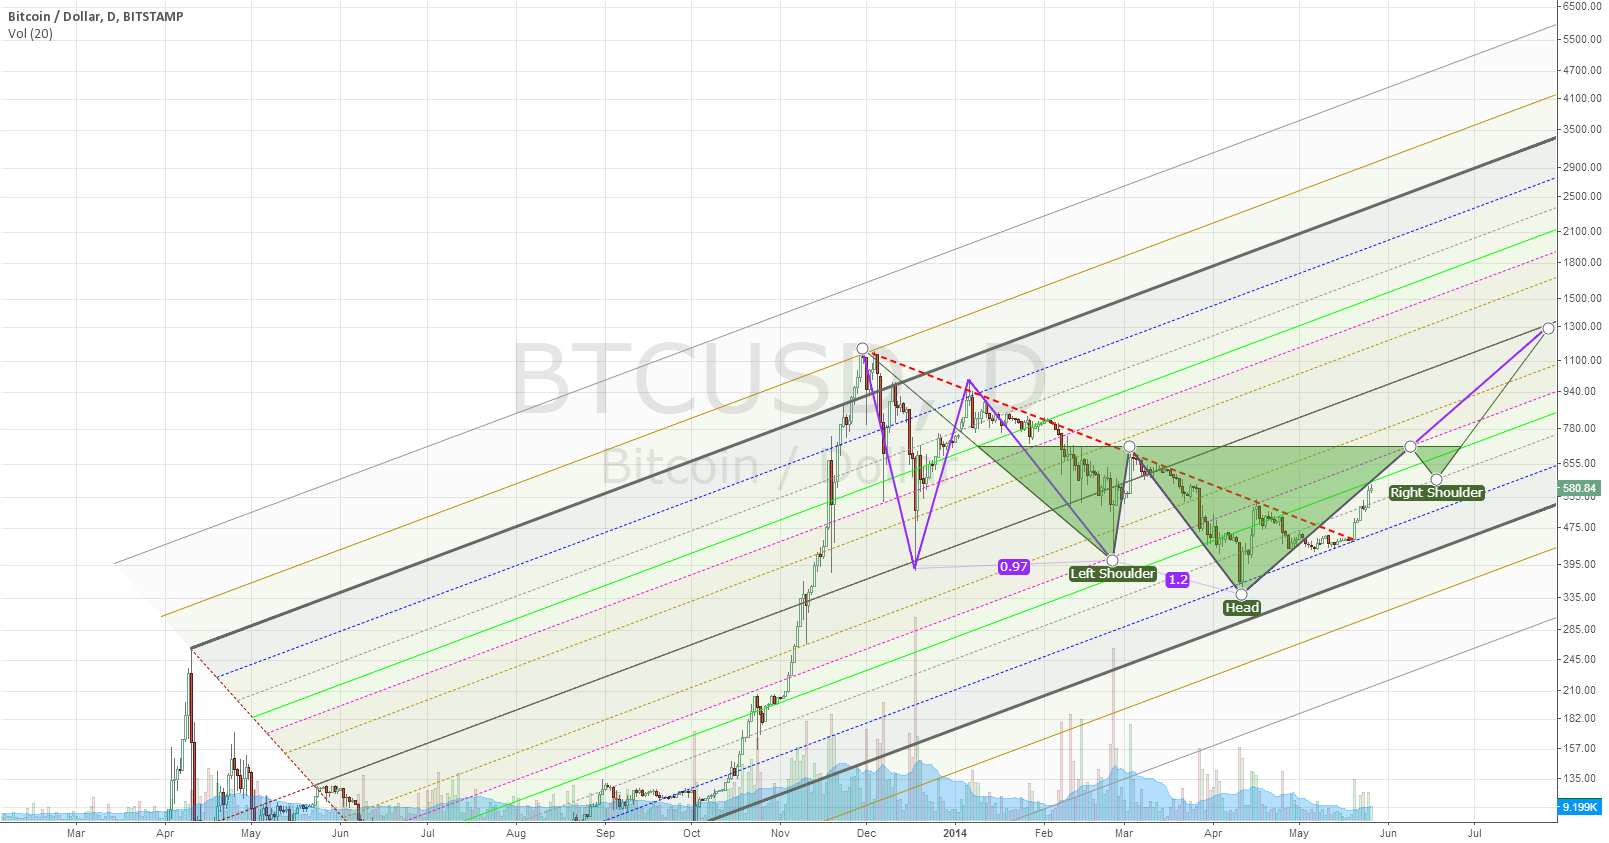 Projecting bitcoin runup to 710 over next 20 days.